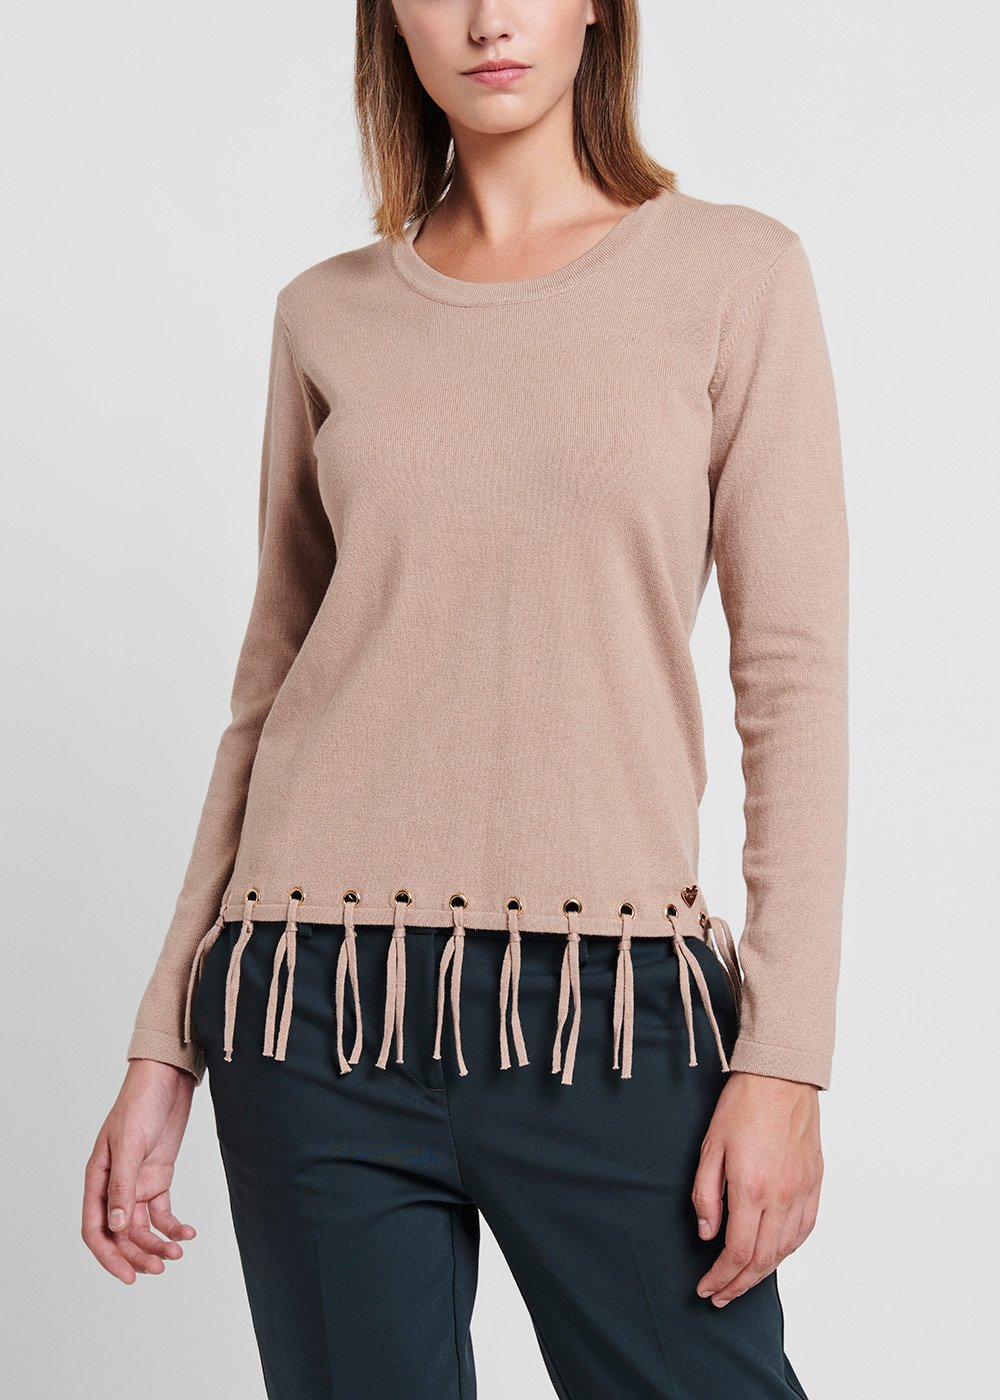 Desert - coloured viscose sweater with bottom fringes - Beige - Woman